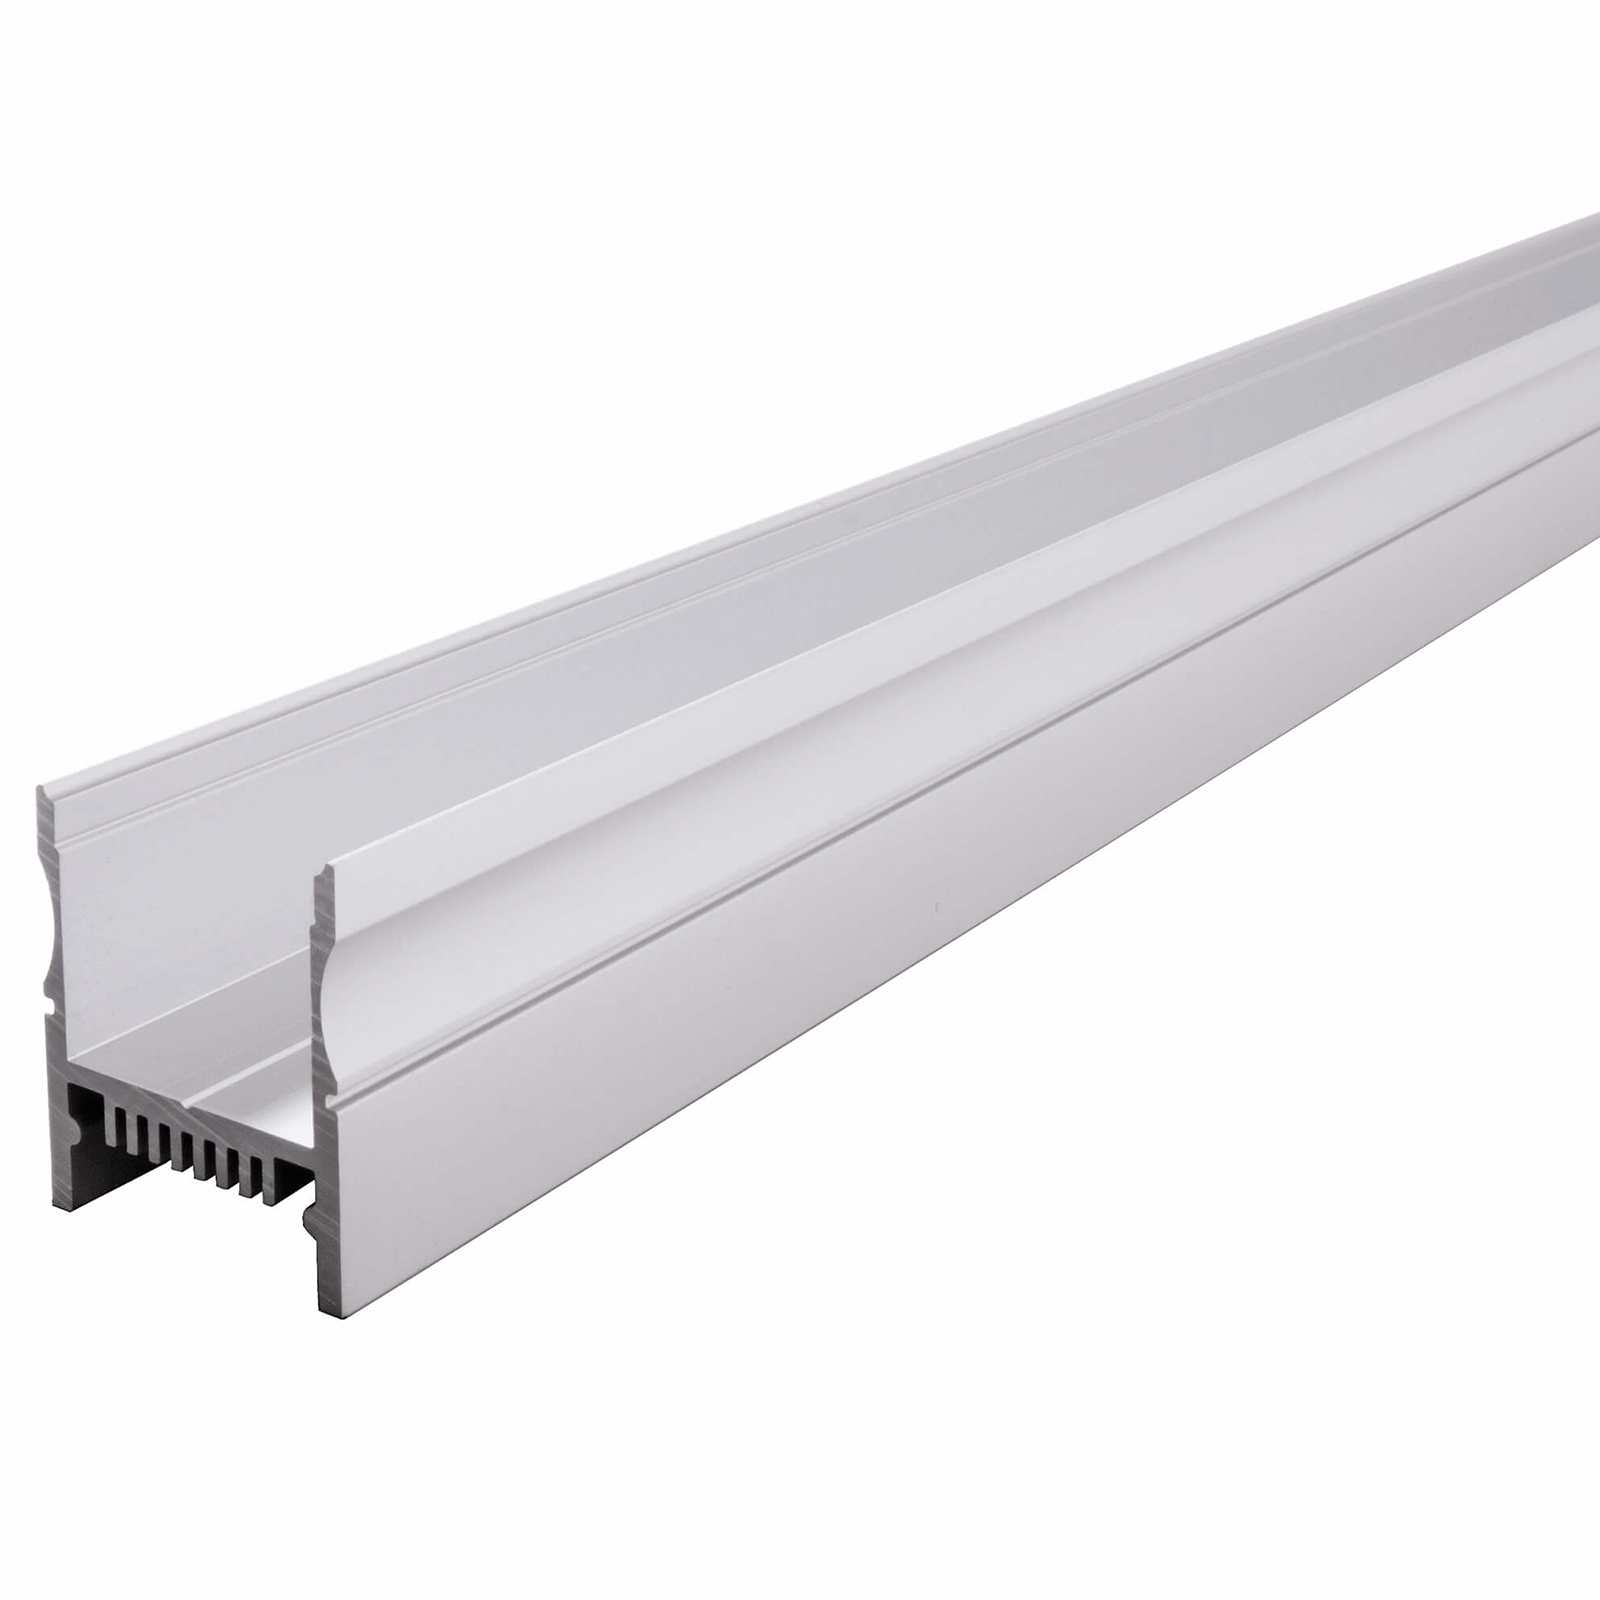 Aluminium profile H PROFILE LED strips sliding support bar linear ceiling wall